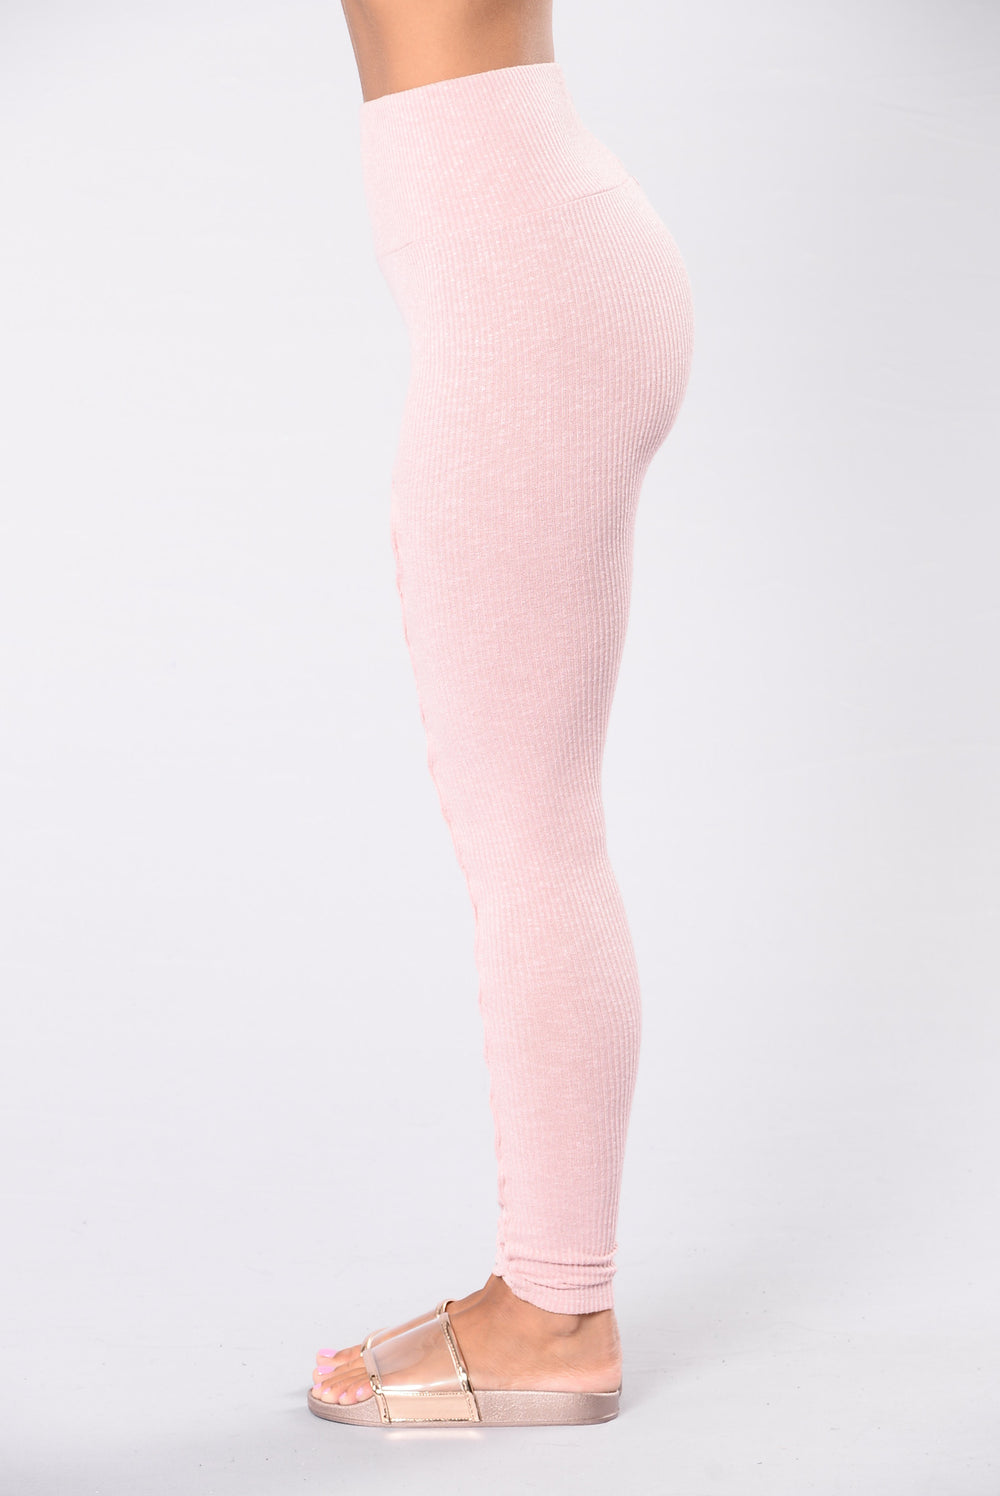 Yoga pants in pink rose color